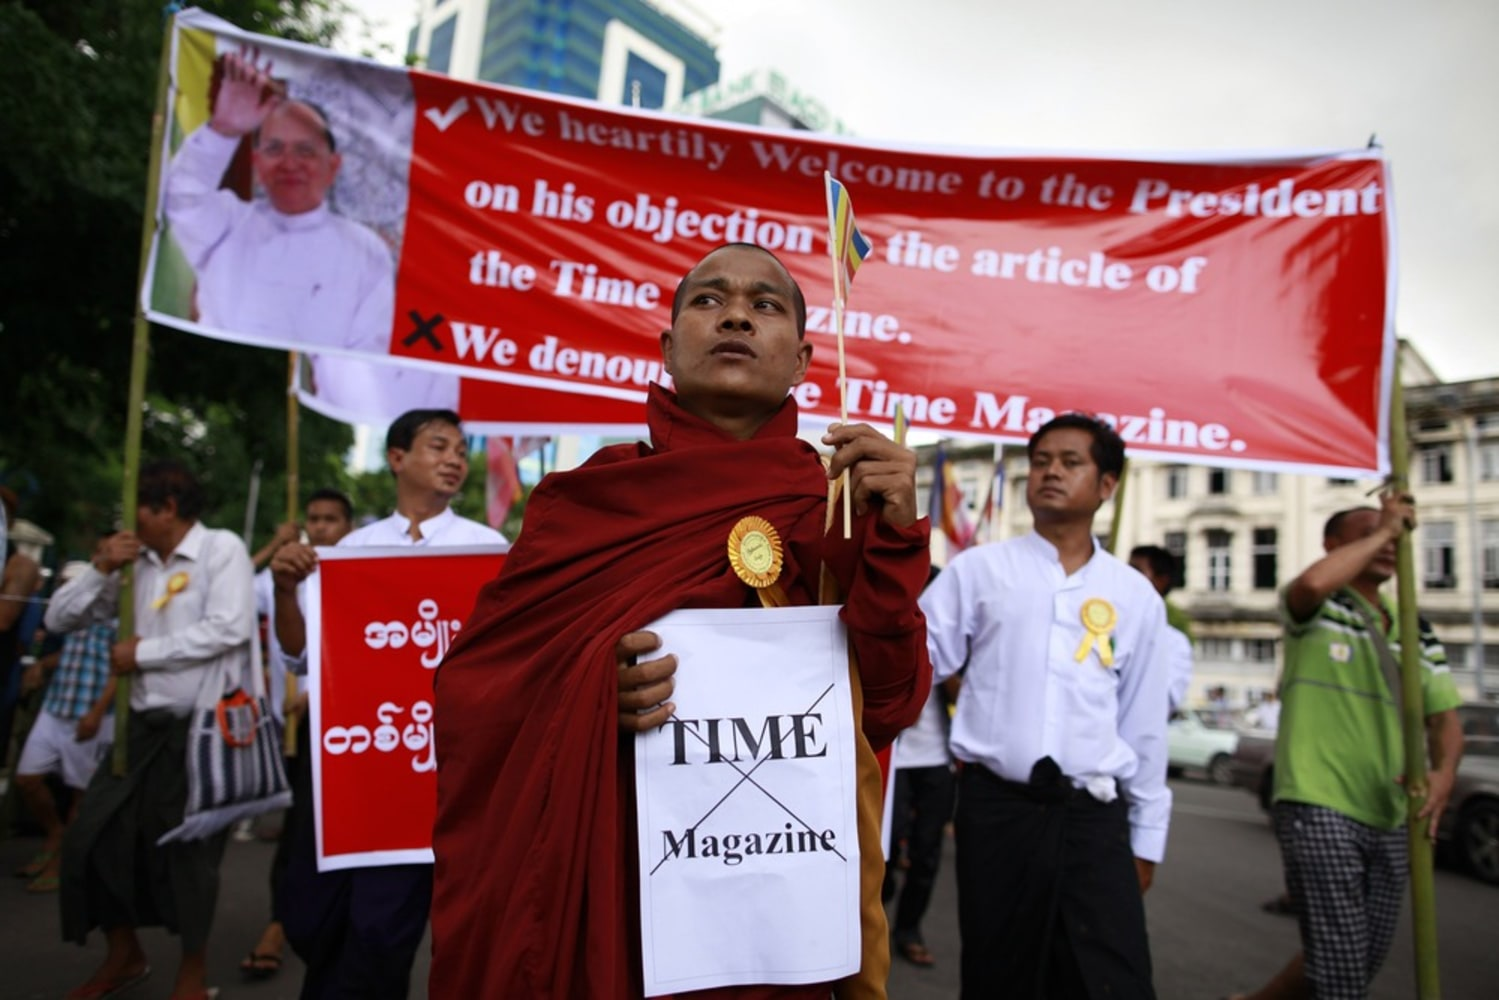 campaign buddhist single men From zen buddhism to preying on vulnerable women by making room for reports of single experiments or minor but when it comes to campaign promises on.